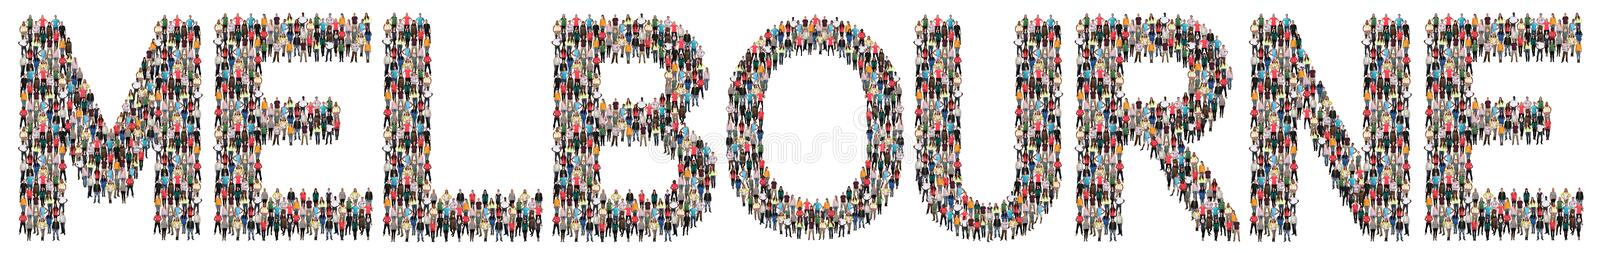 Melbourne multi ethnic group of people royalty free stock photos